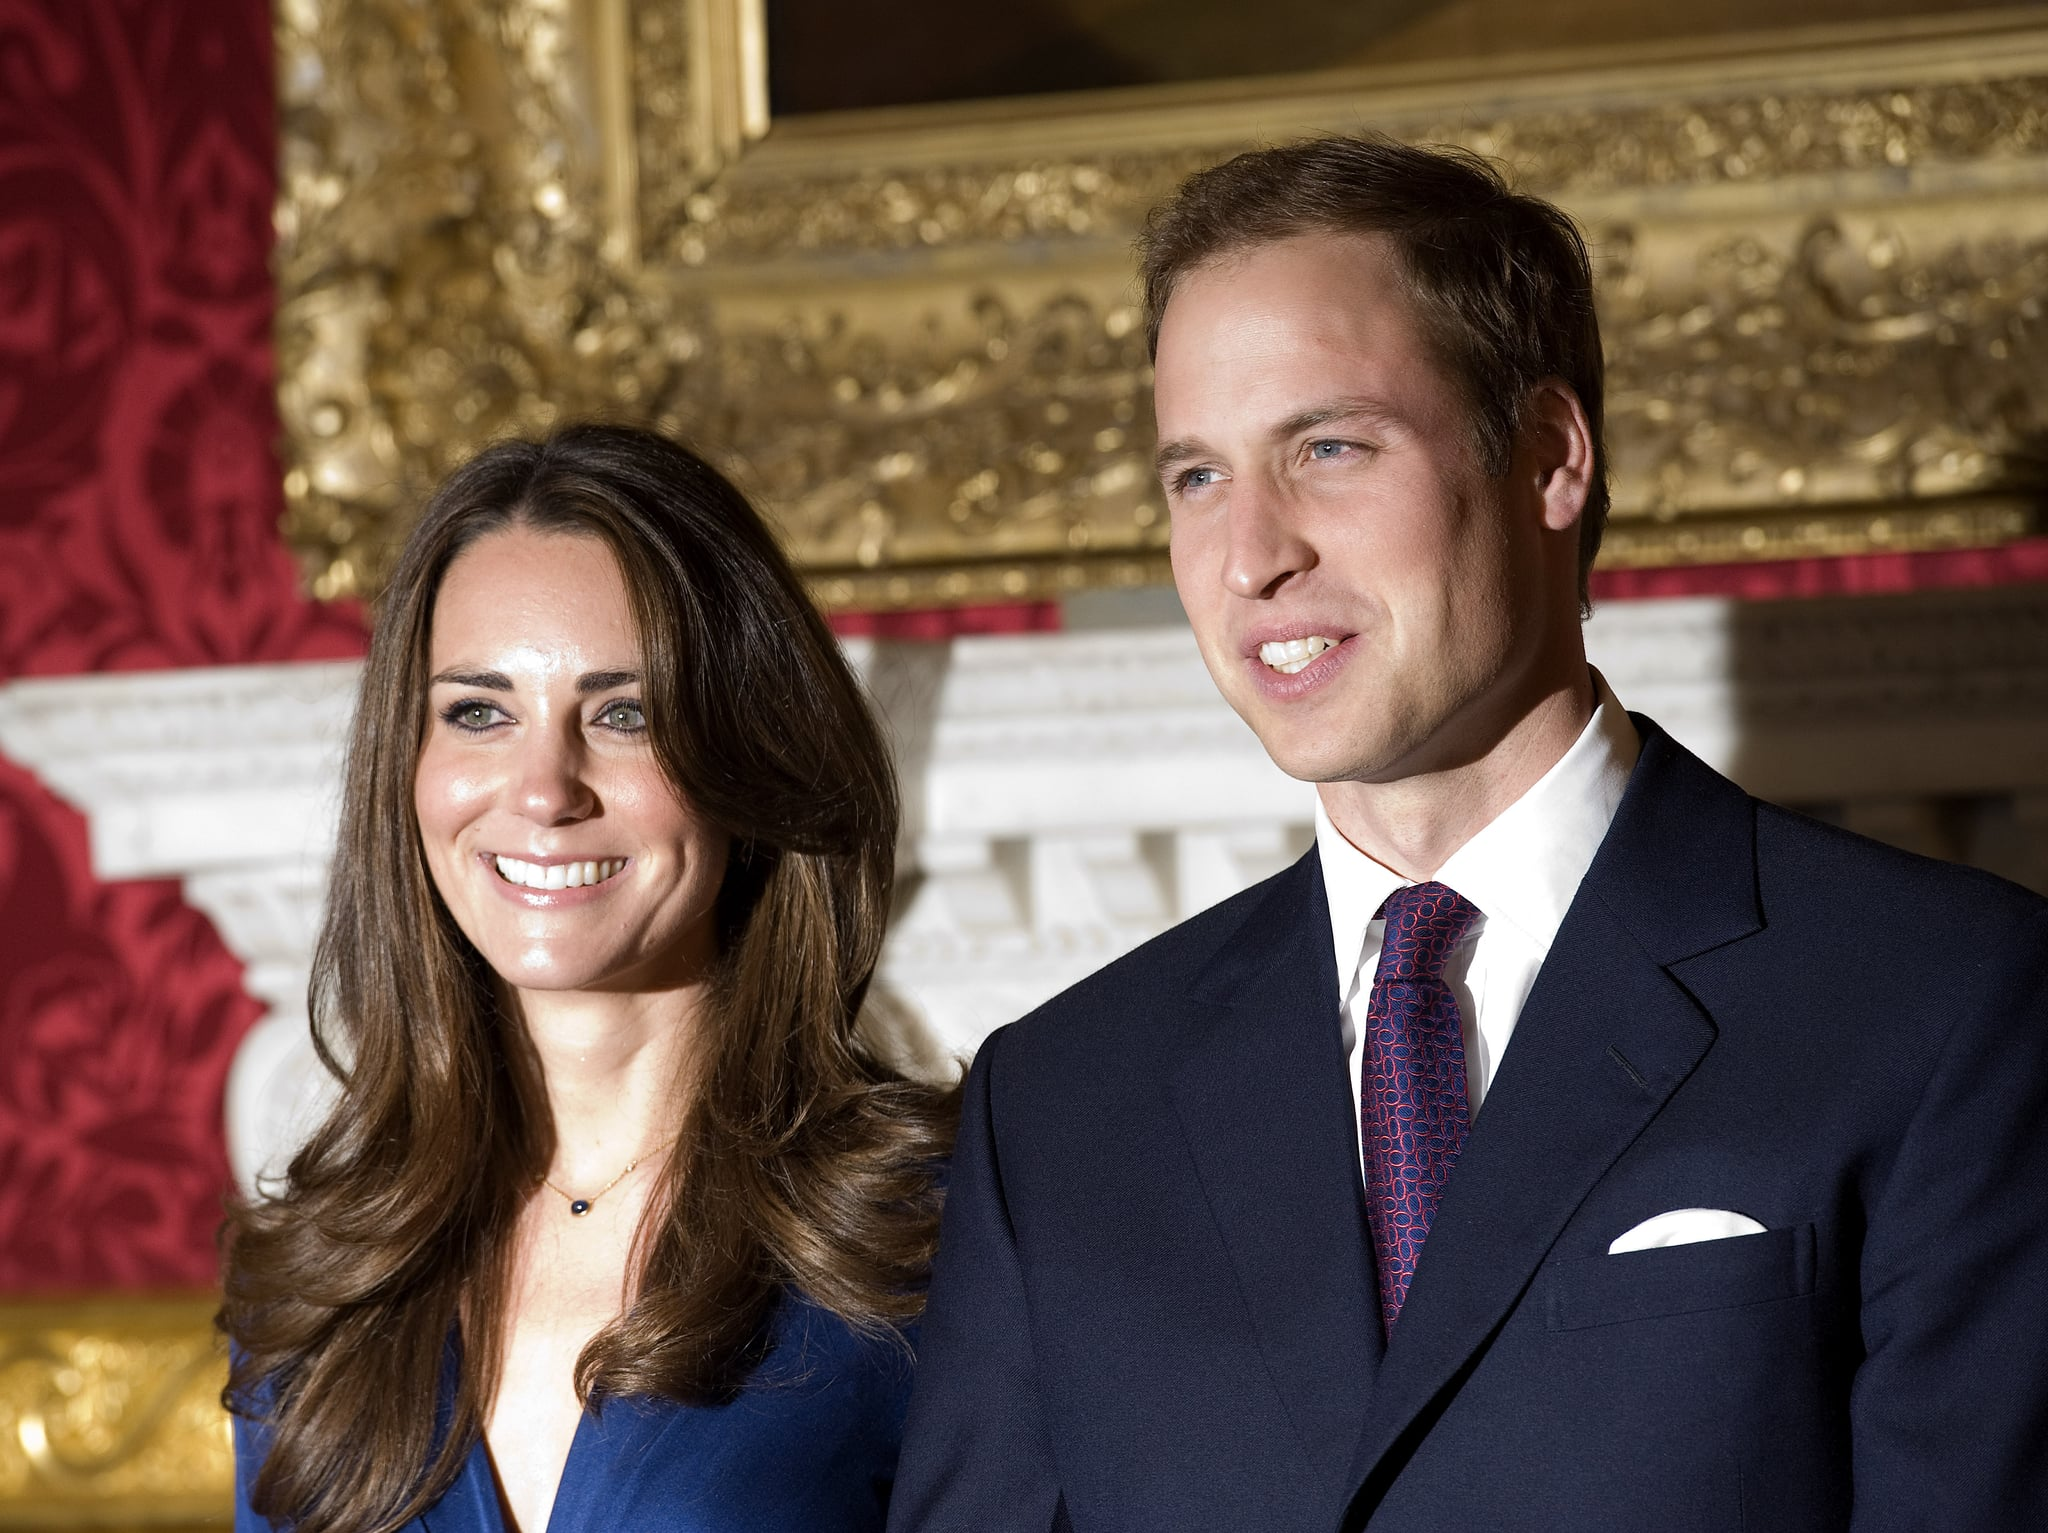 from Drew how long has prince william and kate middleton been dating